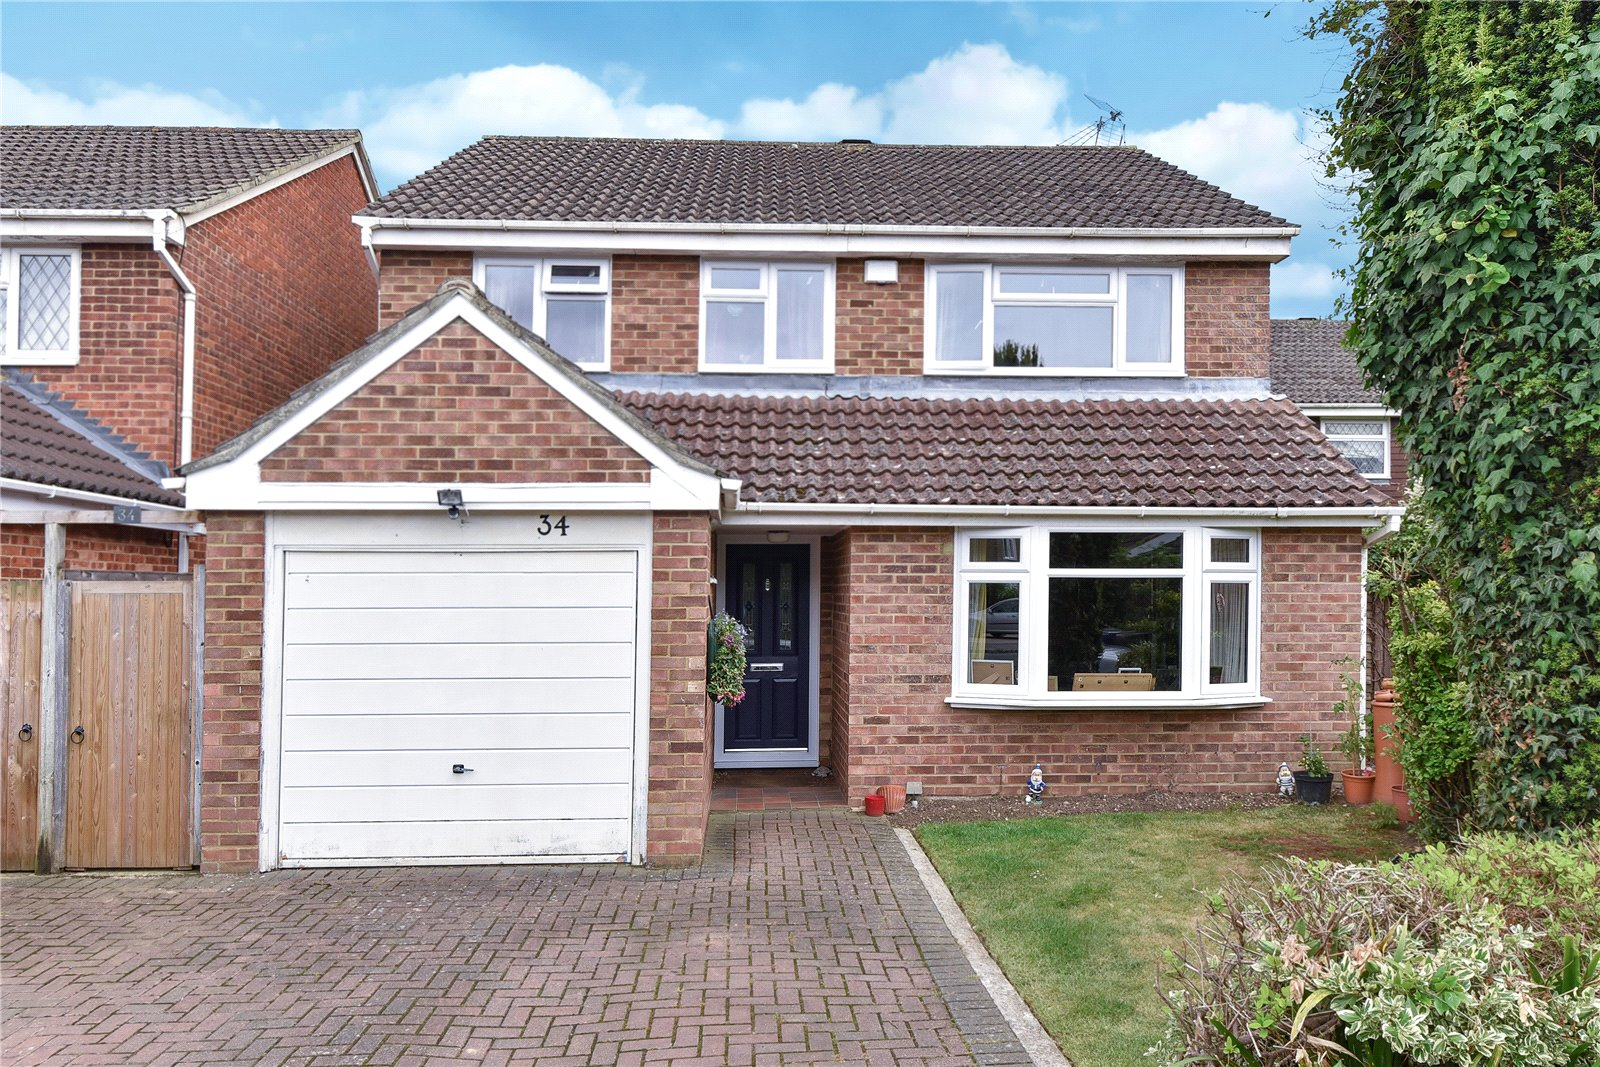 4 Bedrooms Detached House for sale in Springfield Park, Maidenhead, Berkshire, SL6